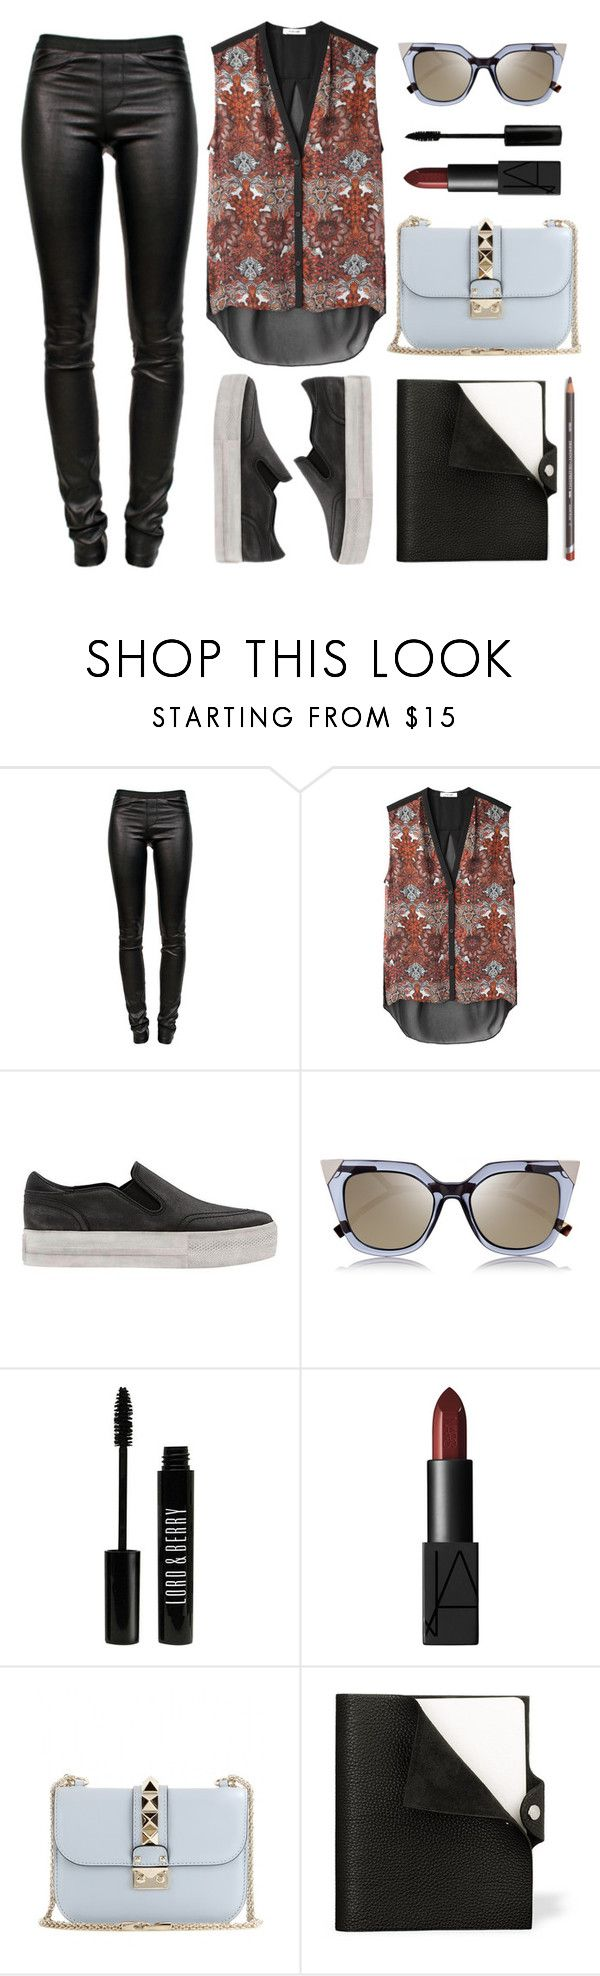 """""""Tricky Trend: Platform Sneakers"""" by felytery ❤ liked on Polyvore featuring Helmut Lang, Ash, Fendi, Lord & Berry, NARS Cosmetics, Valentino, Hermès and platformsneakers"""